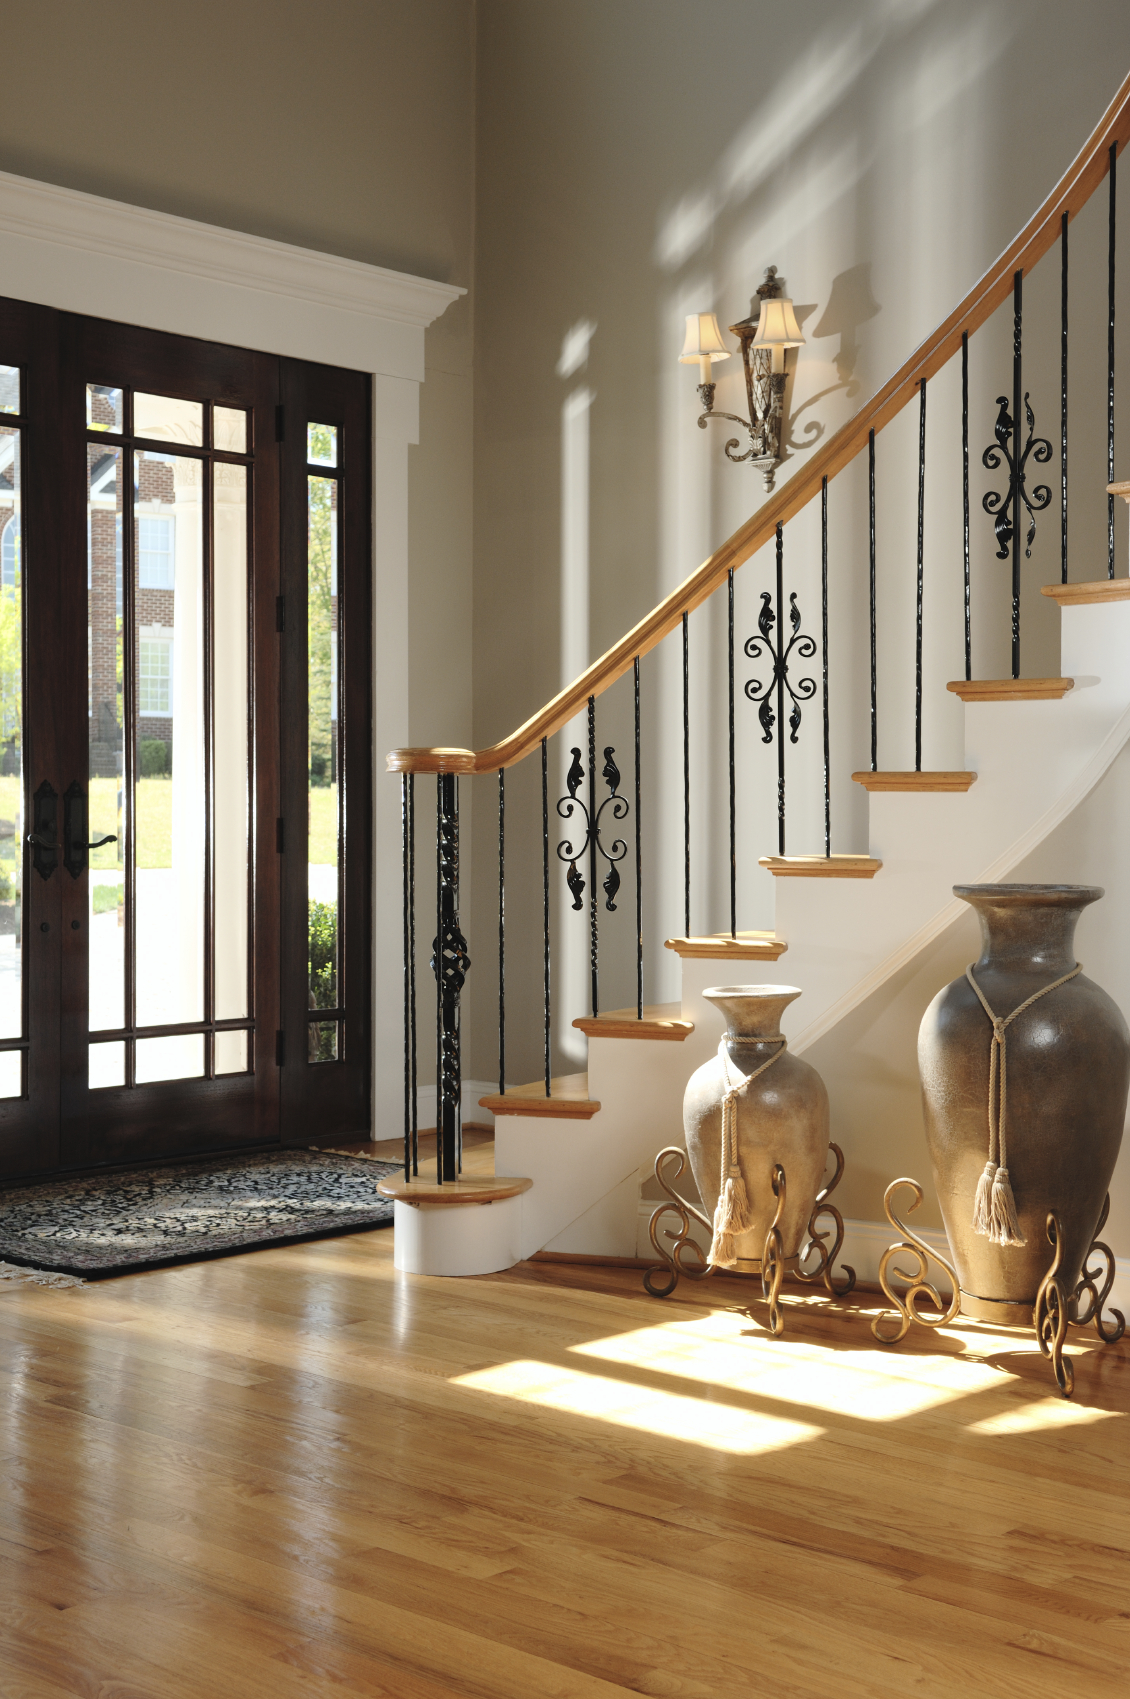 46 beautiful entrance hall designs and ideas pictures Design ideas for hallways and stairs